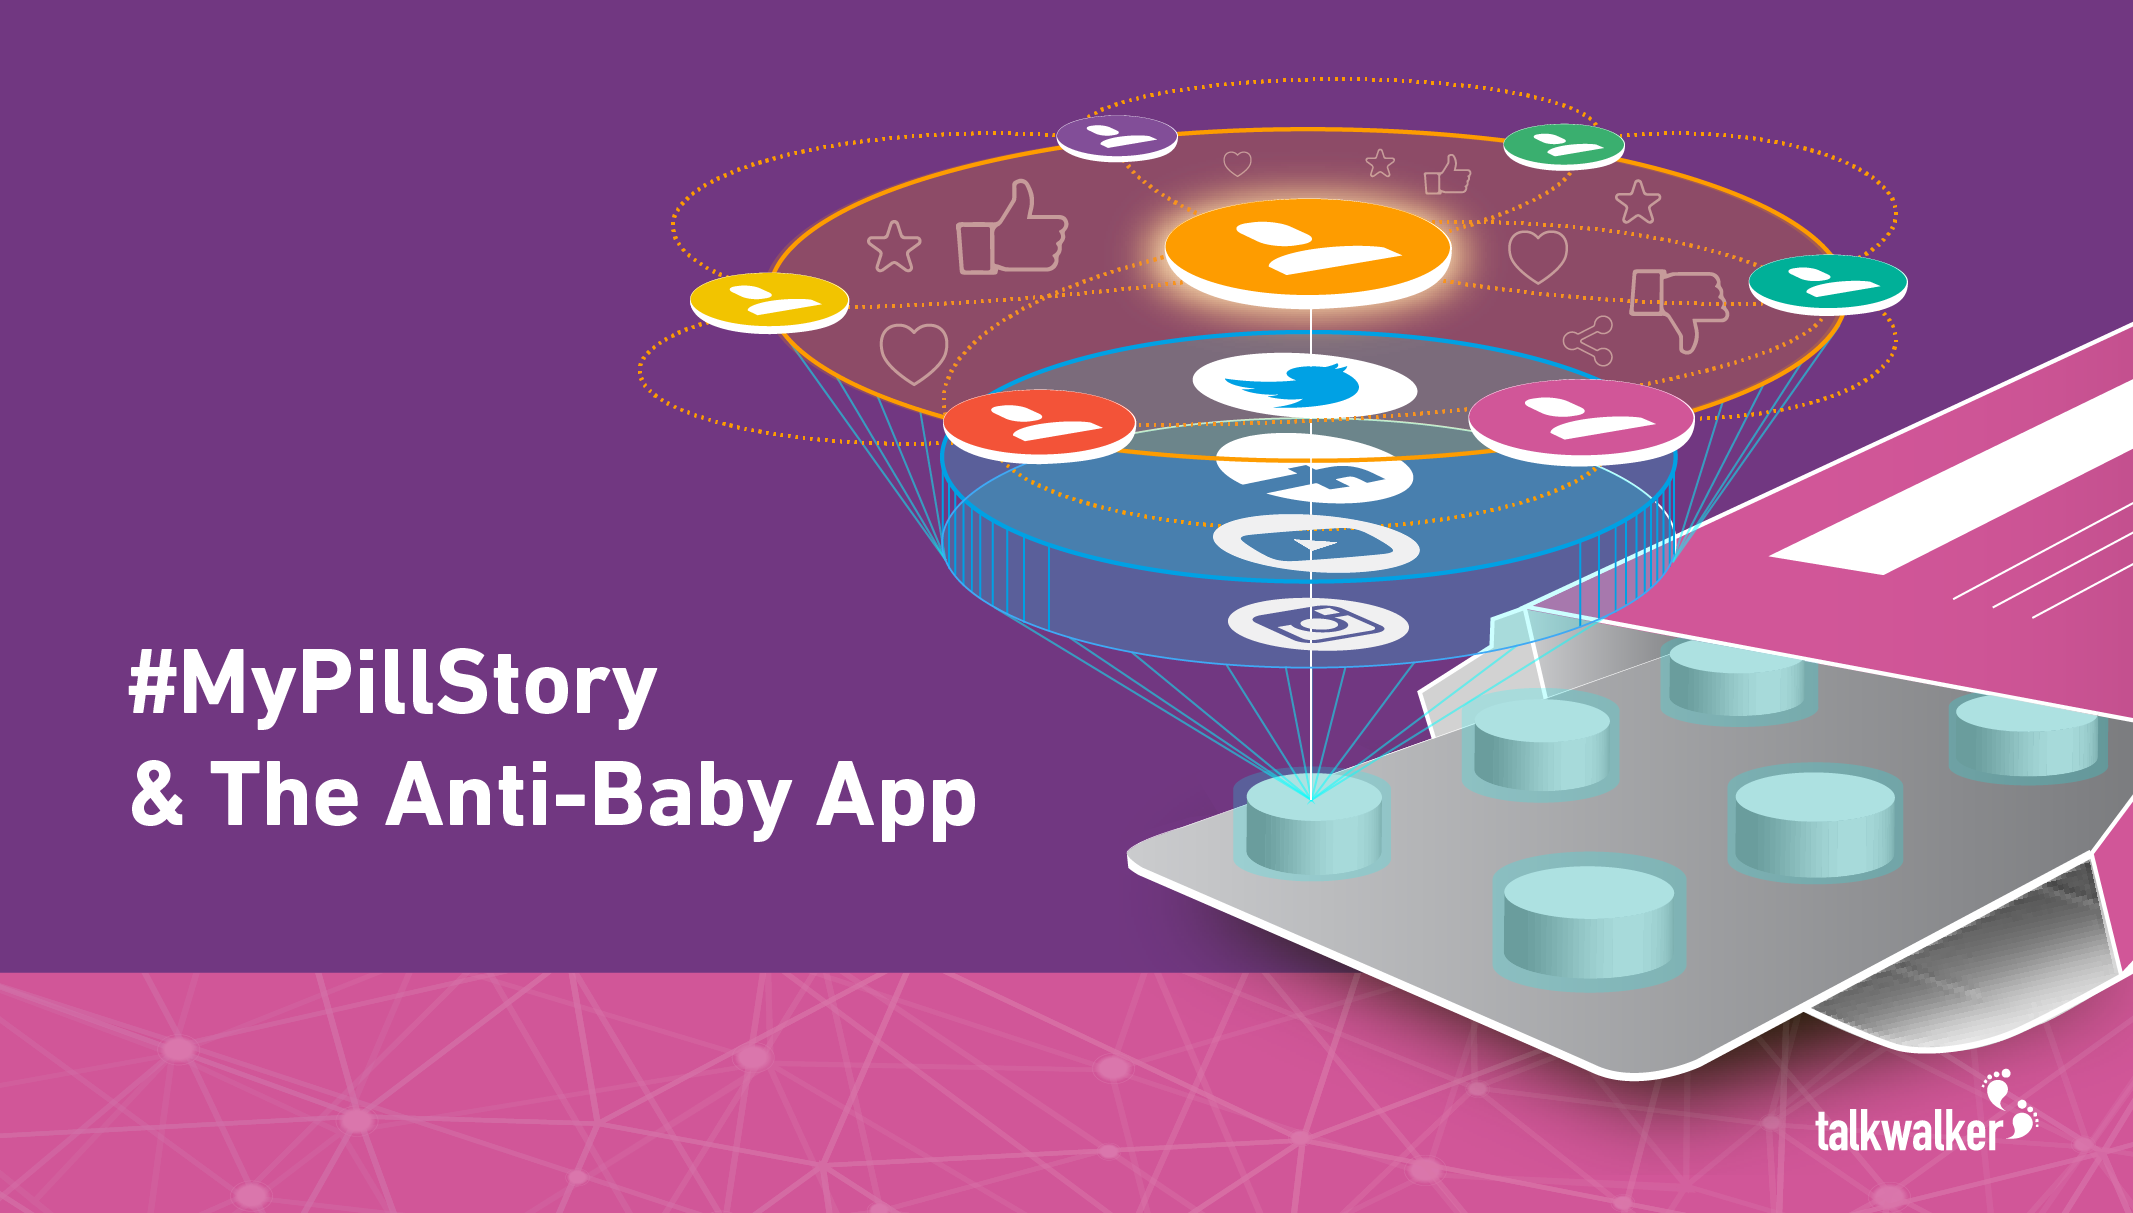 #MyPillStory & the Anti-Baby App: Why Pharma Can't Afford to Ignore Women's Health on Social